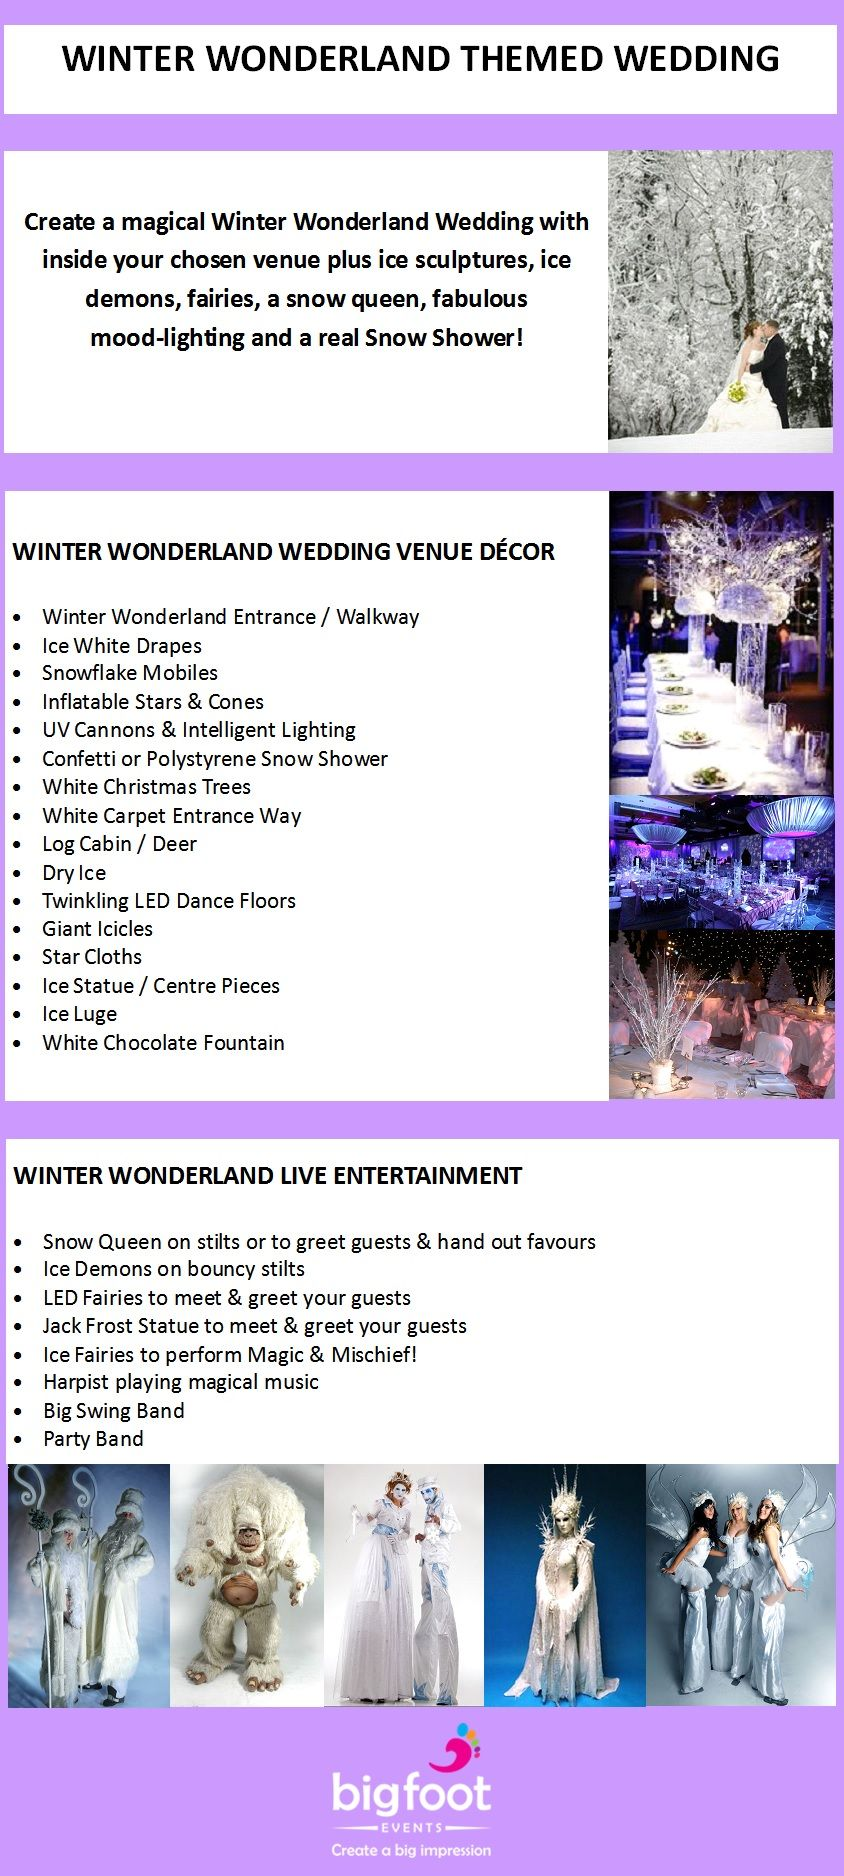 Create a magical Winter Wonderland Wedding with themed decor inside ...